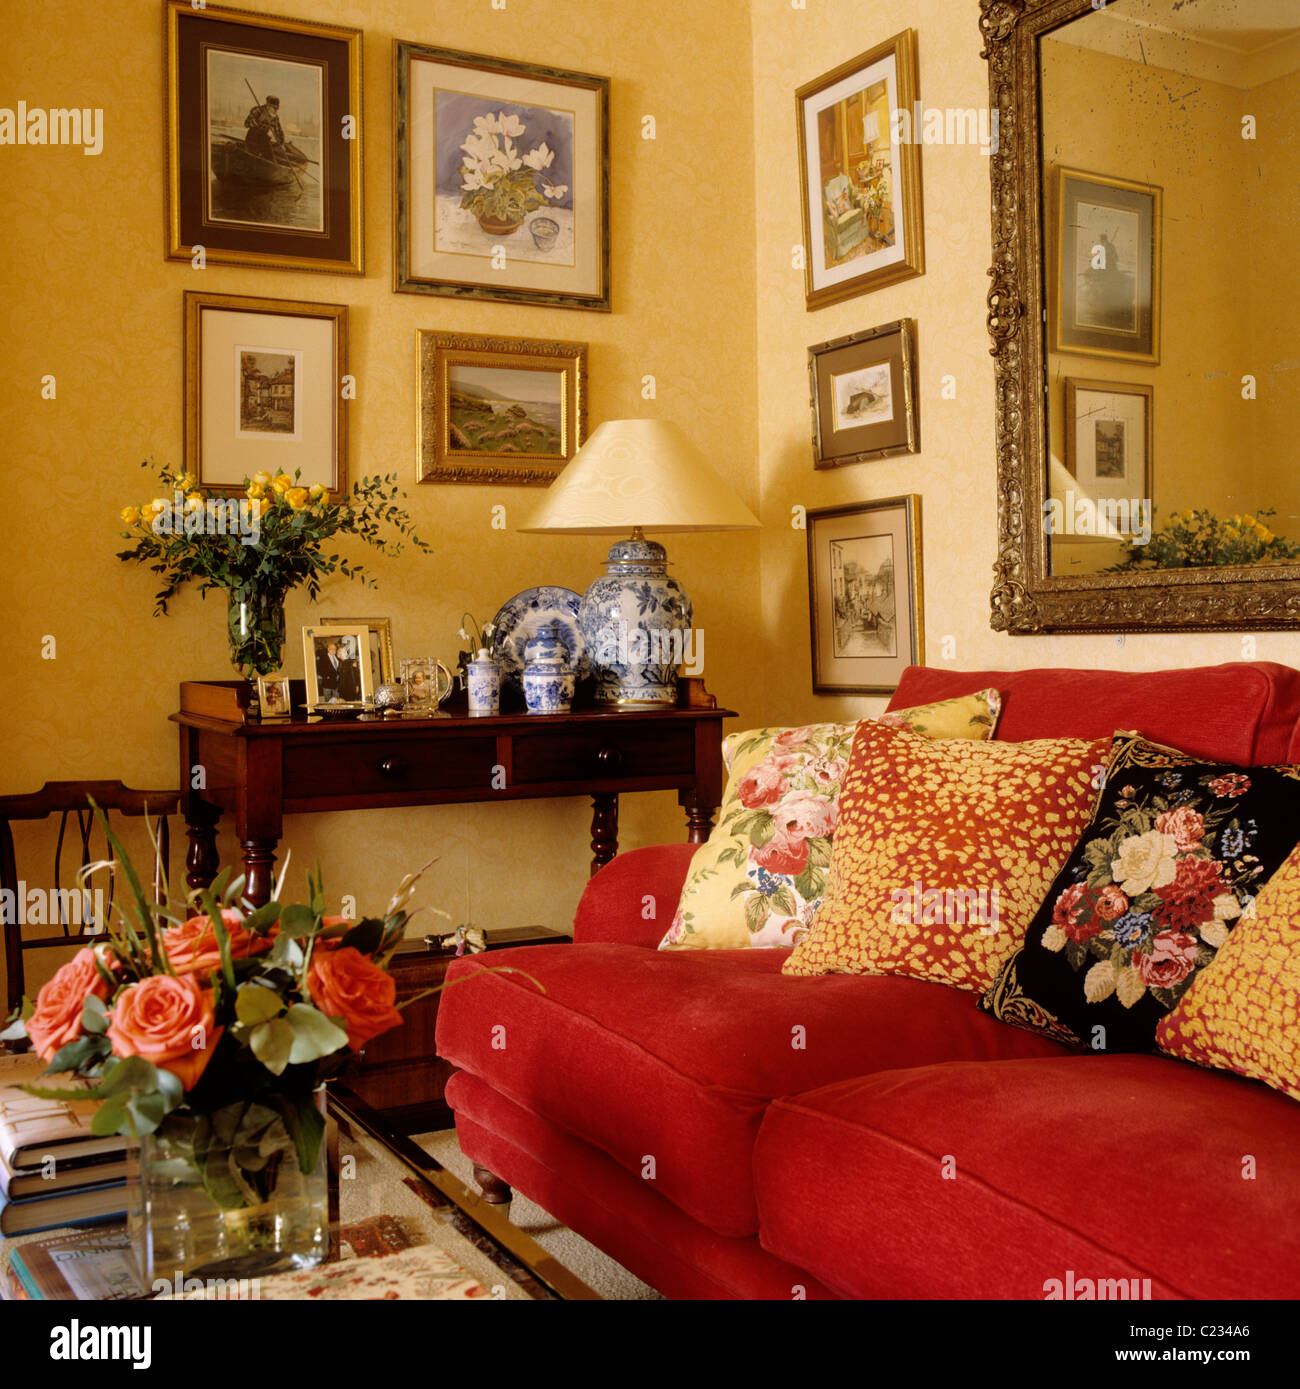 Patterned cushions on red sofa in living room with a